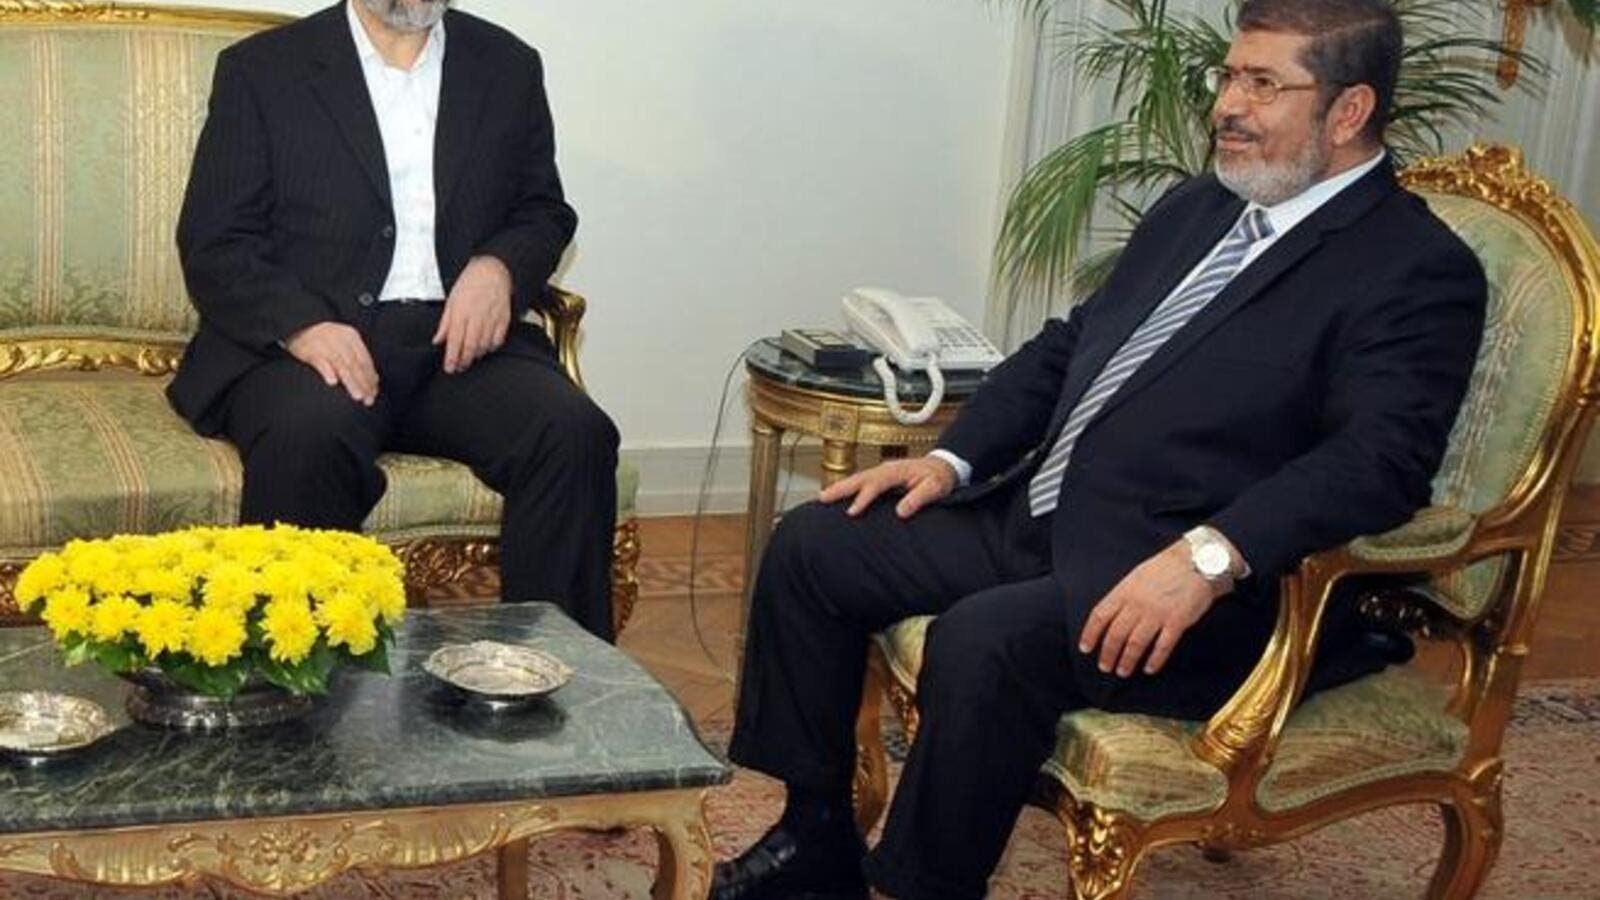 Morsi successfully negotiated an Israeli ceasefire speaking to Hamas' Khaled Mashaal (pictured) but so far has struggled more with calming the waters in his own country.